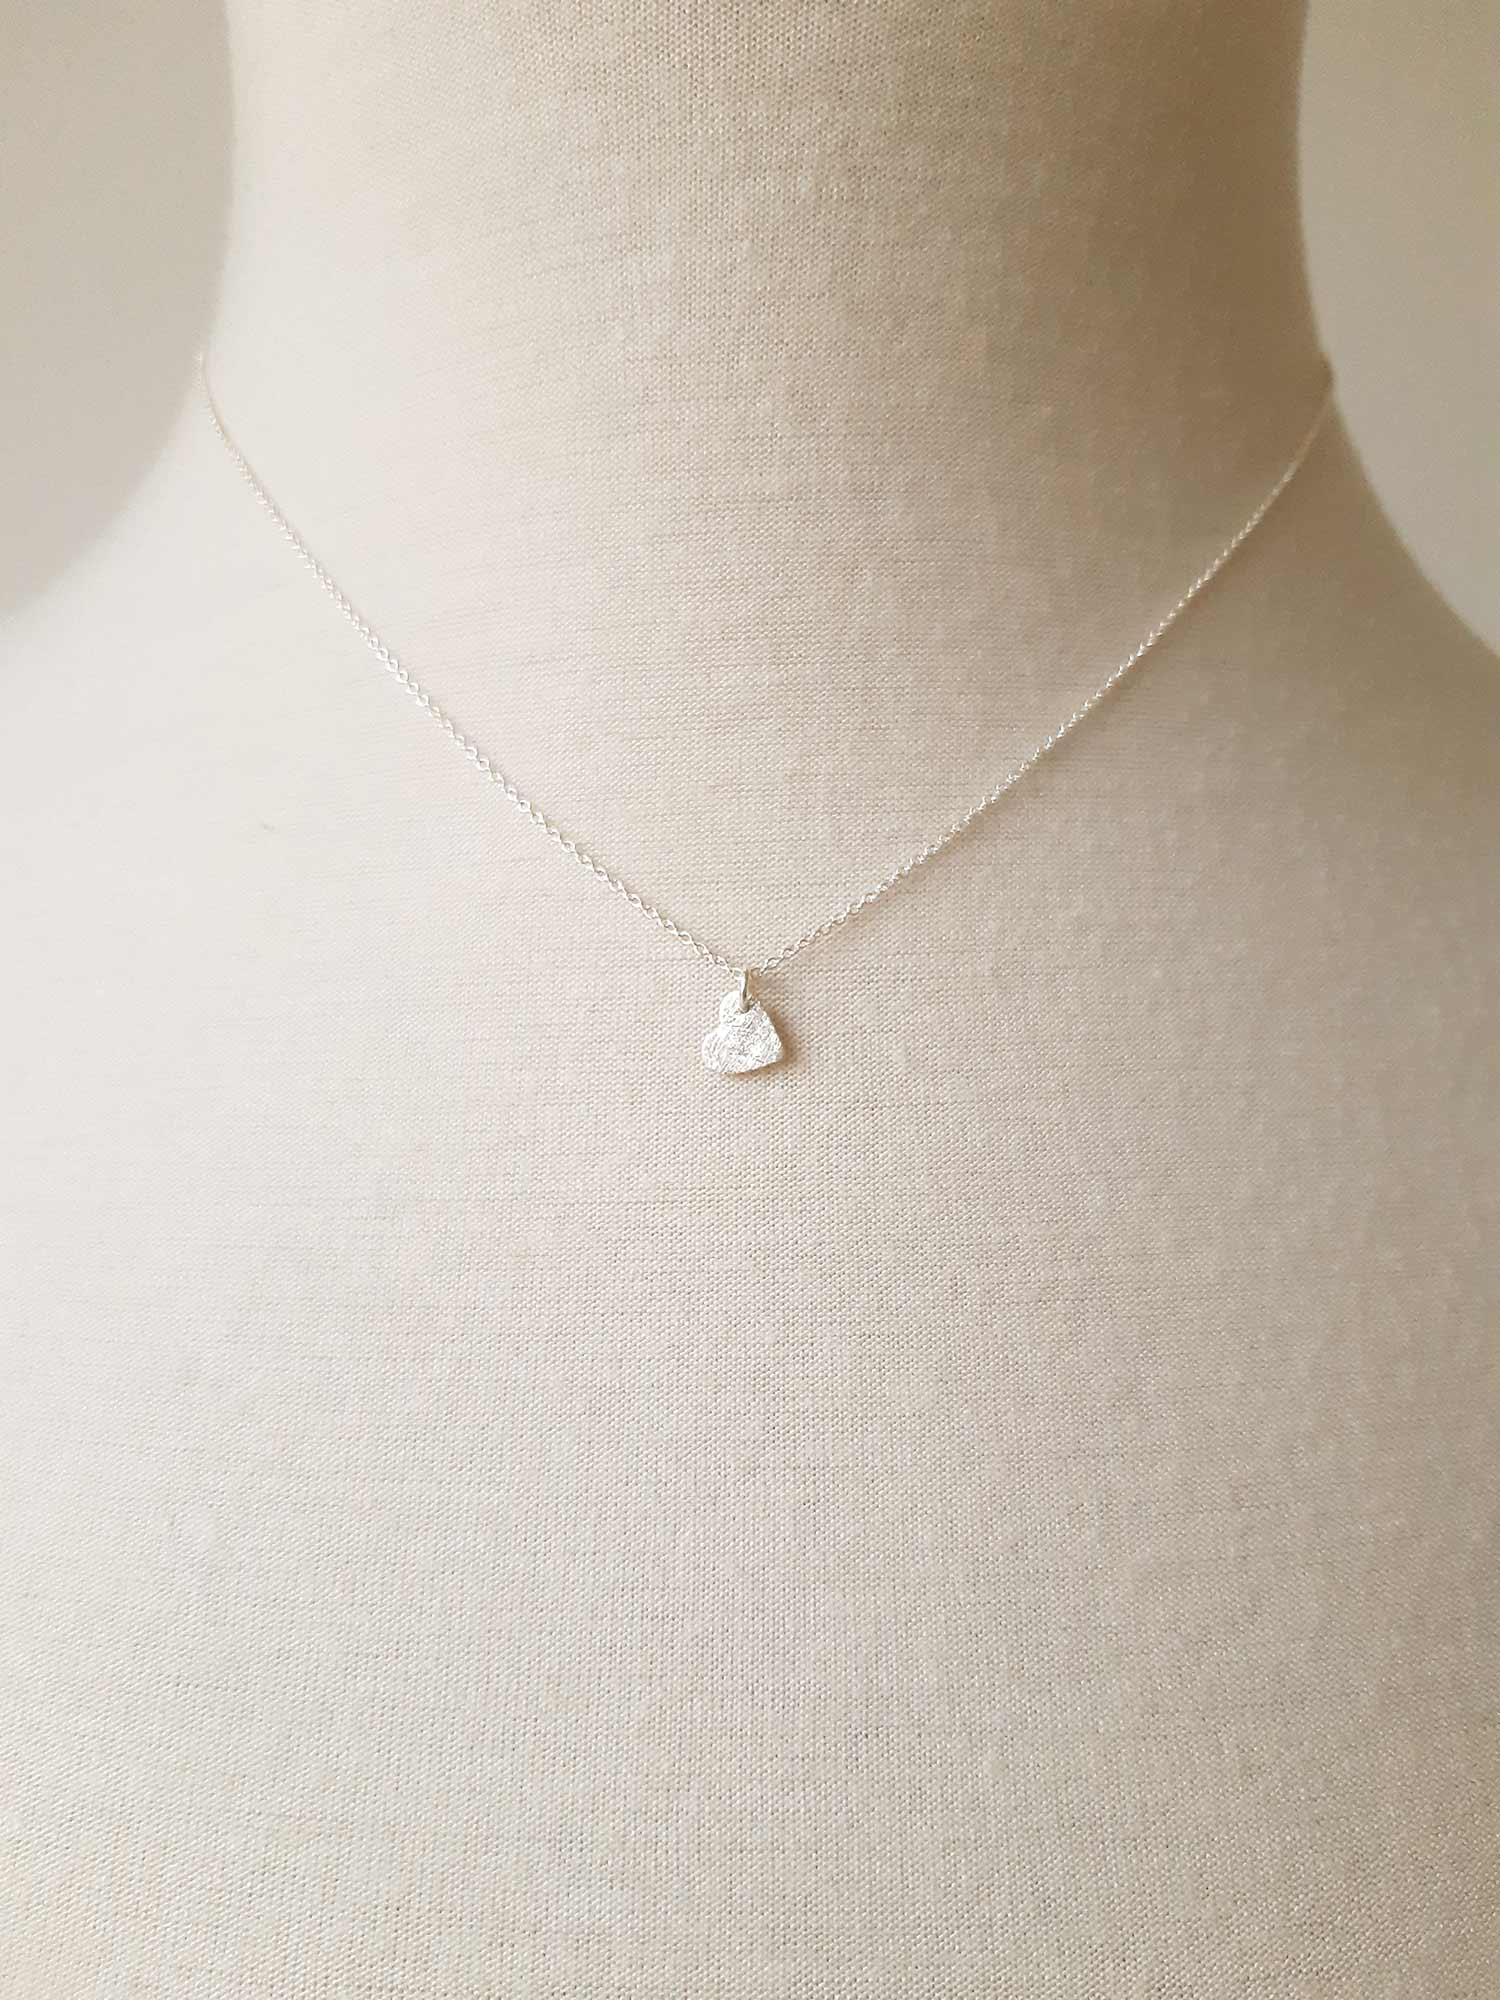 Image of Little Heart Necklace · Silver